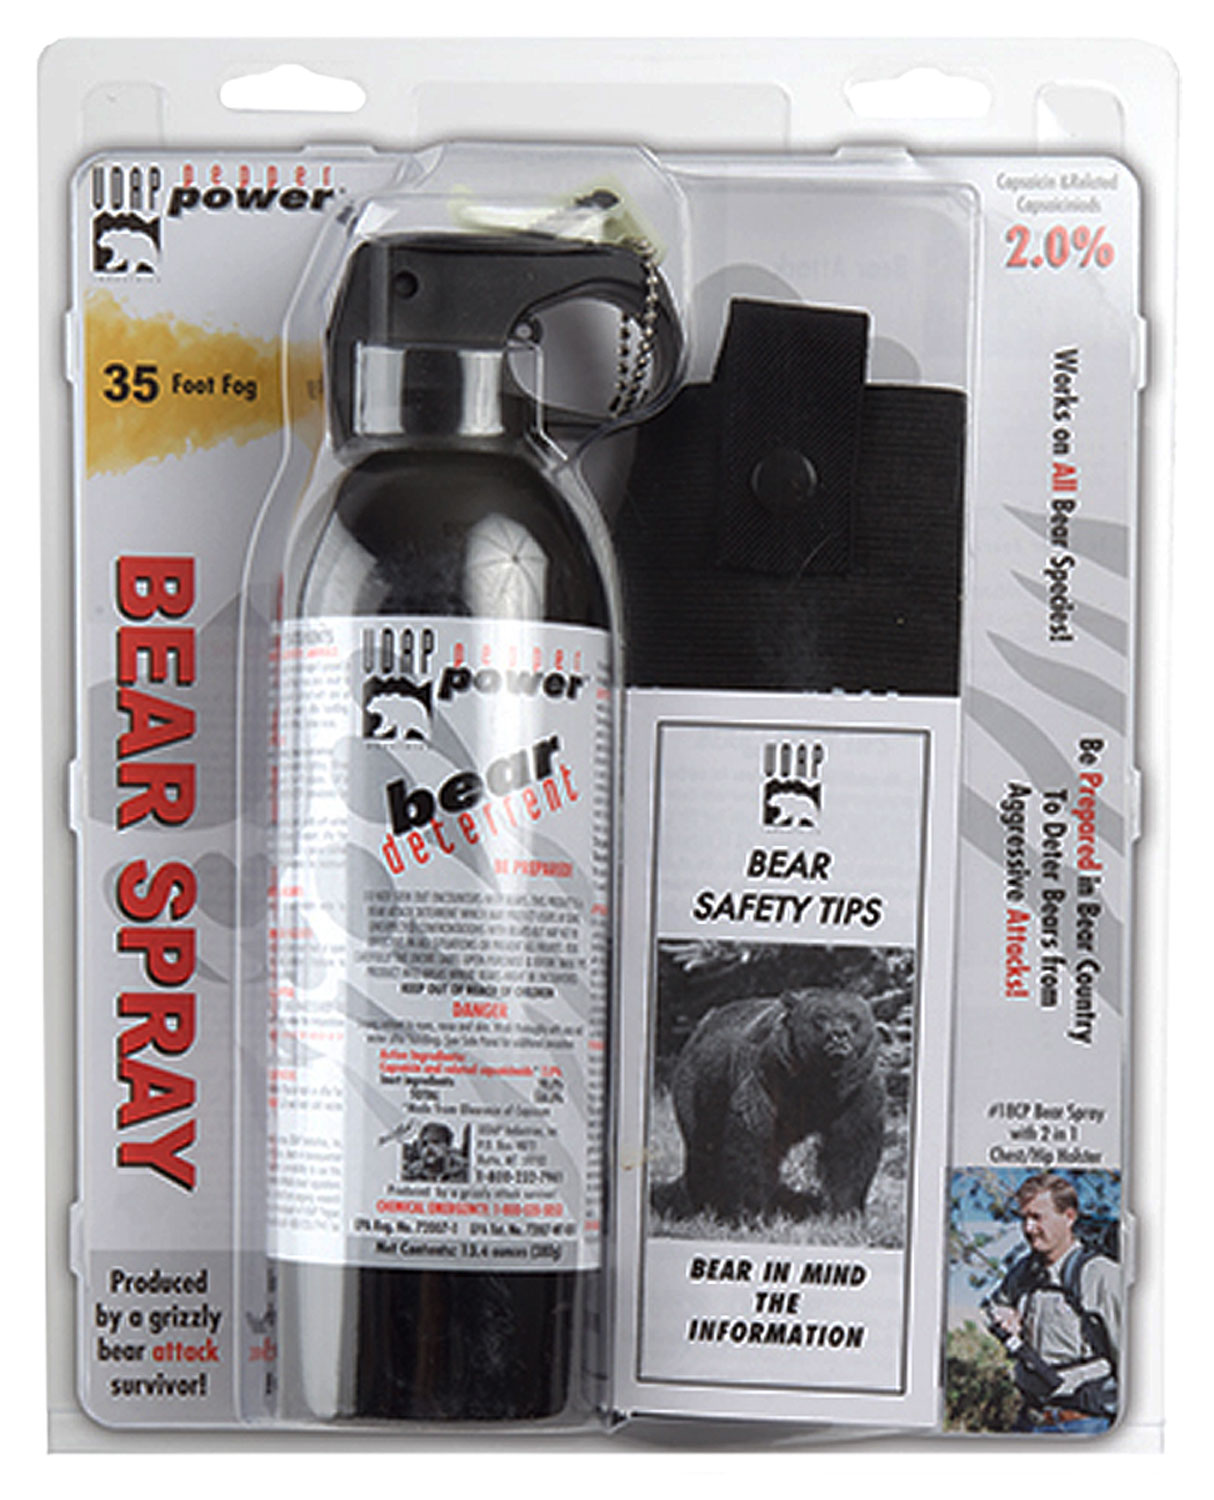 UDAP 18CP Super Magnum Bear Spray w/ Chest Holster 13.4oz/380g Up to 35 Ft Black